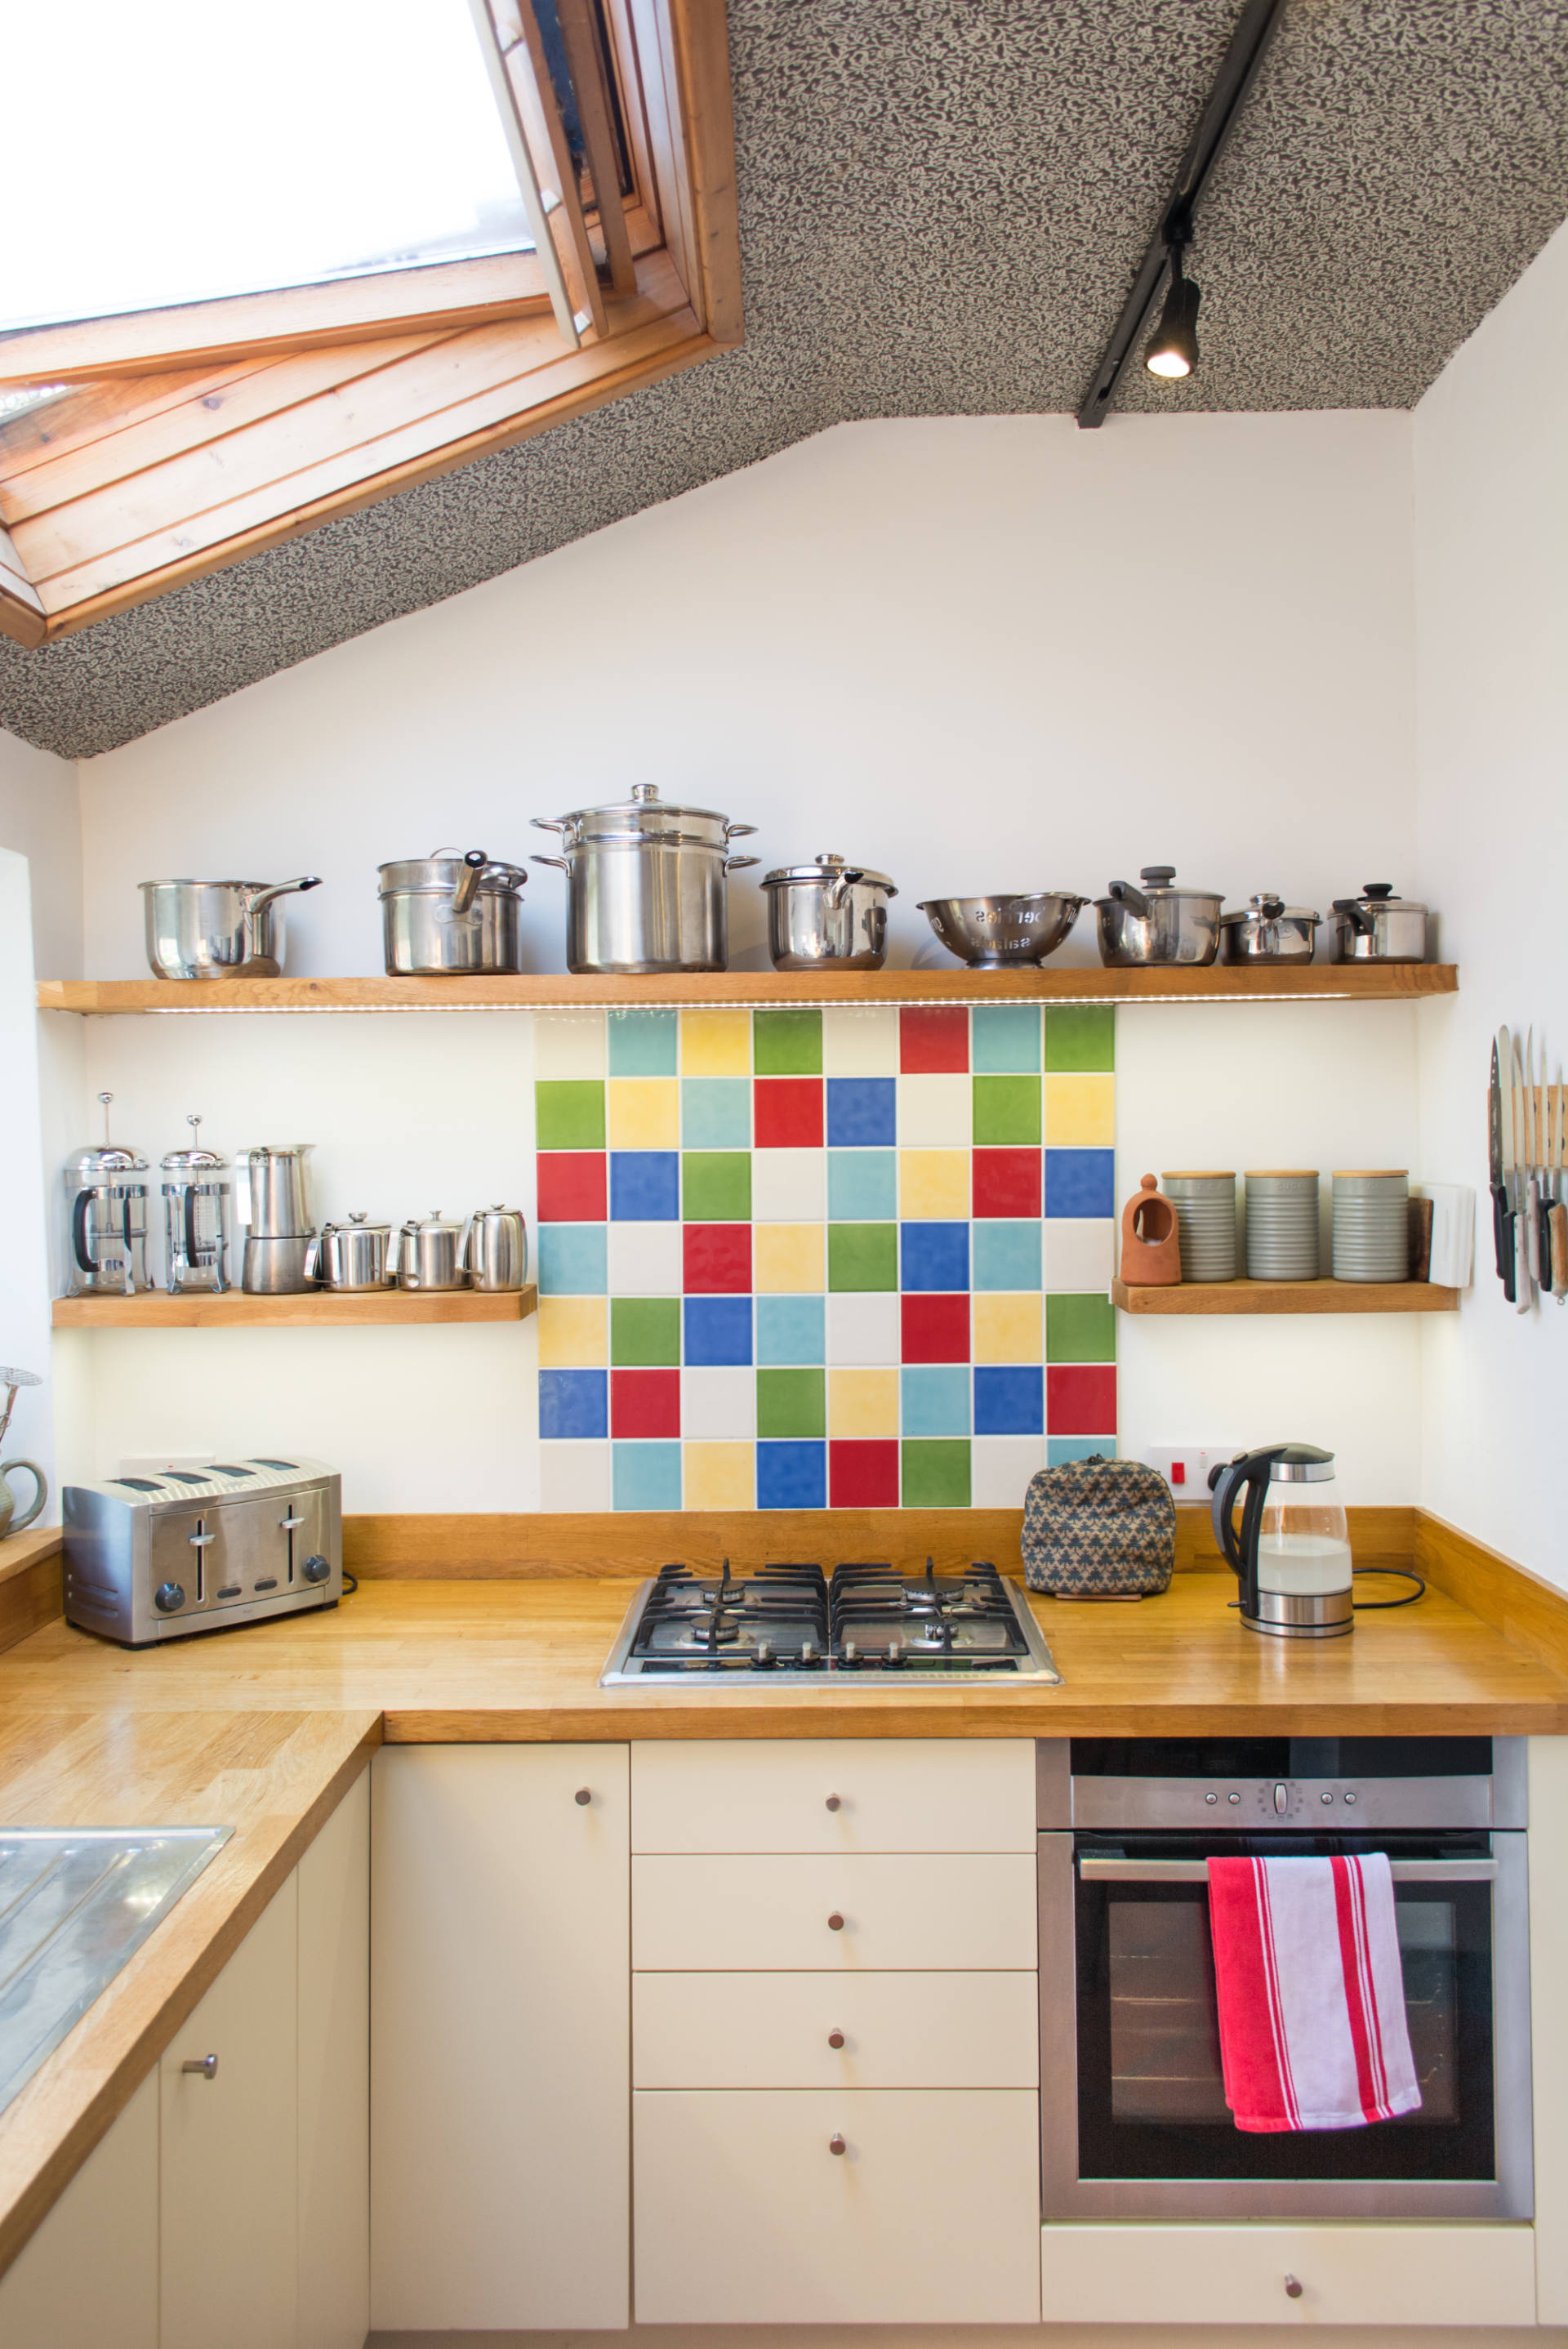 Holiday home kitchen with colourful tiles, and kitchen utensils.